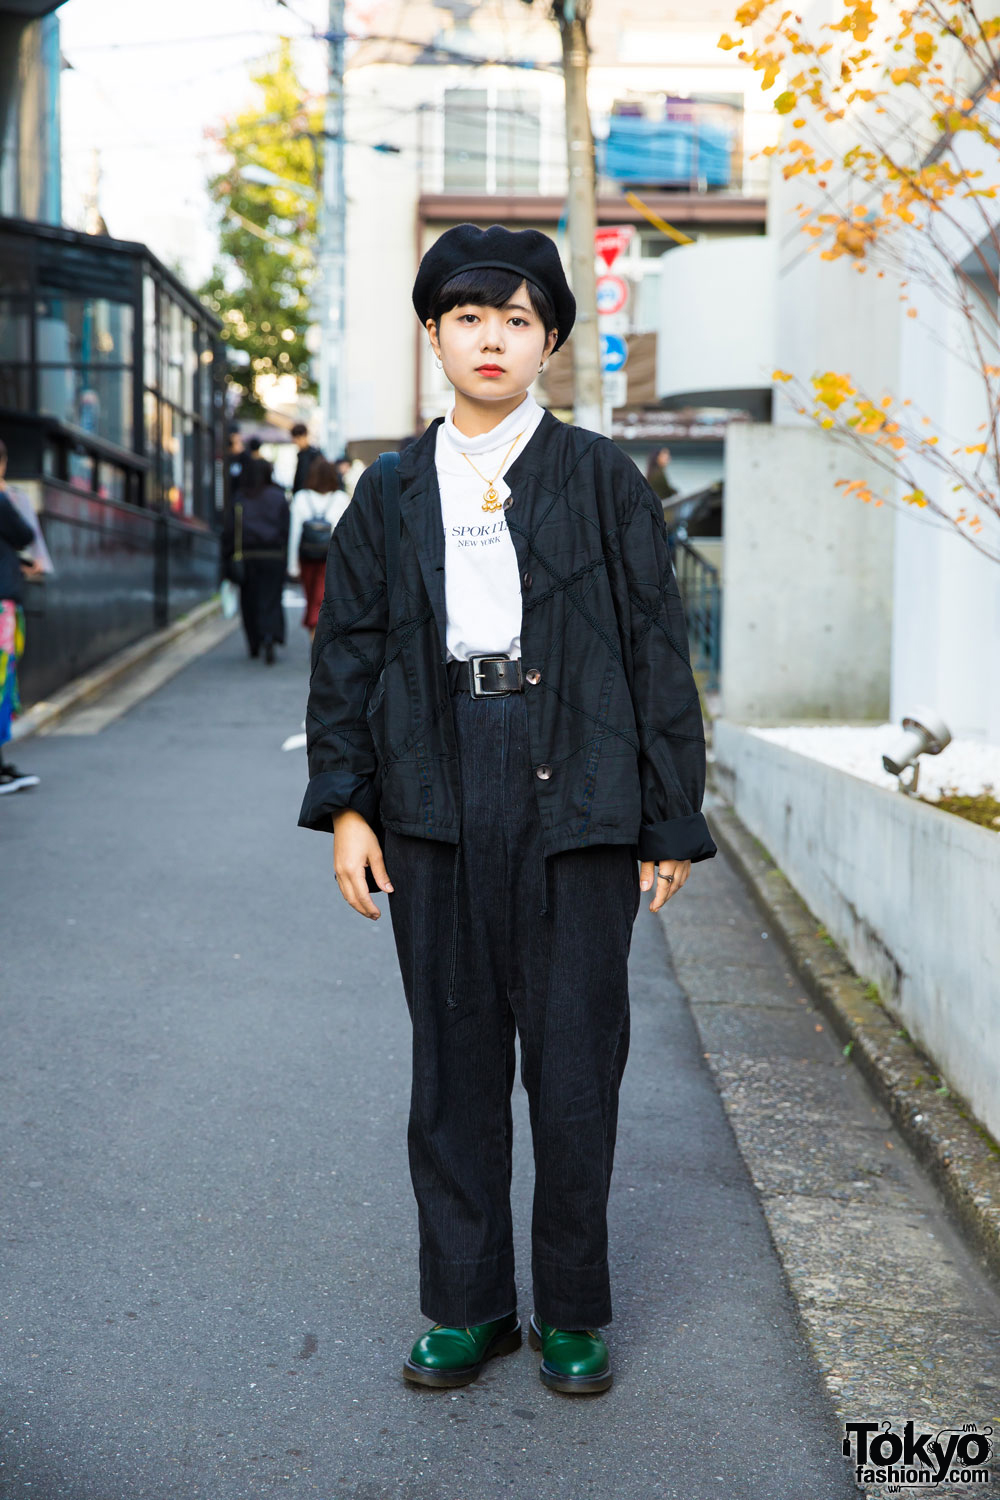 harajuku girl in casual street style w pass the baton dr martens fashion. Black Bedroom Furniture Sets. Home Design Ideas